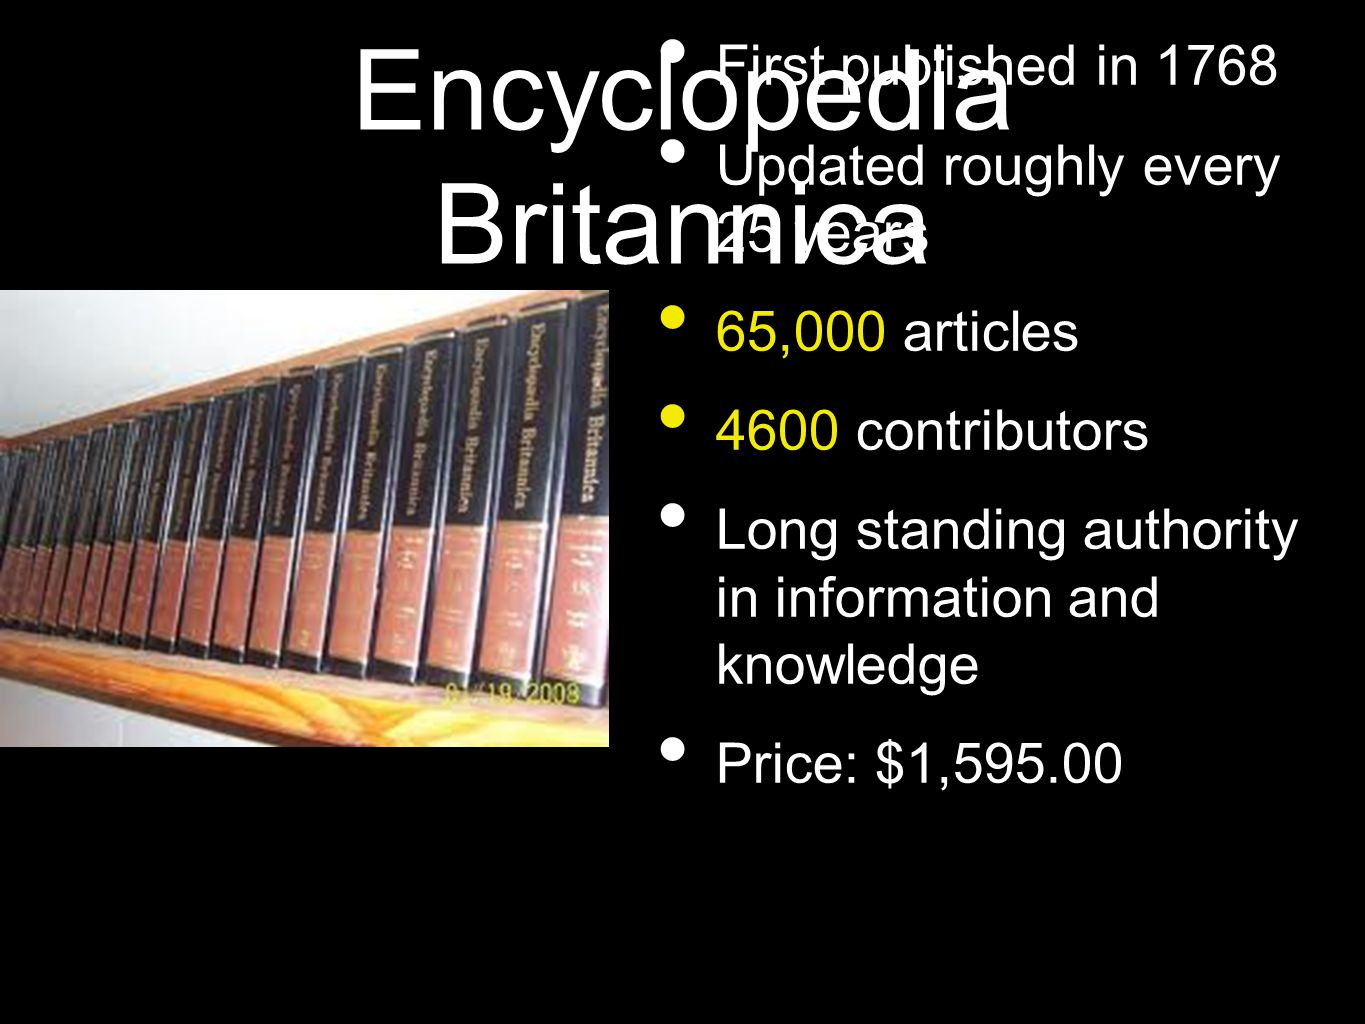 Encyclopedia Britannica • First published in 1768 • Updated roughly every 25 years • 65,000 articles • 4600 contributors • Long standing authority in